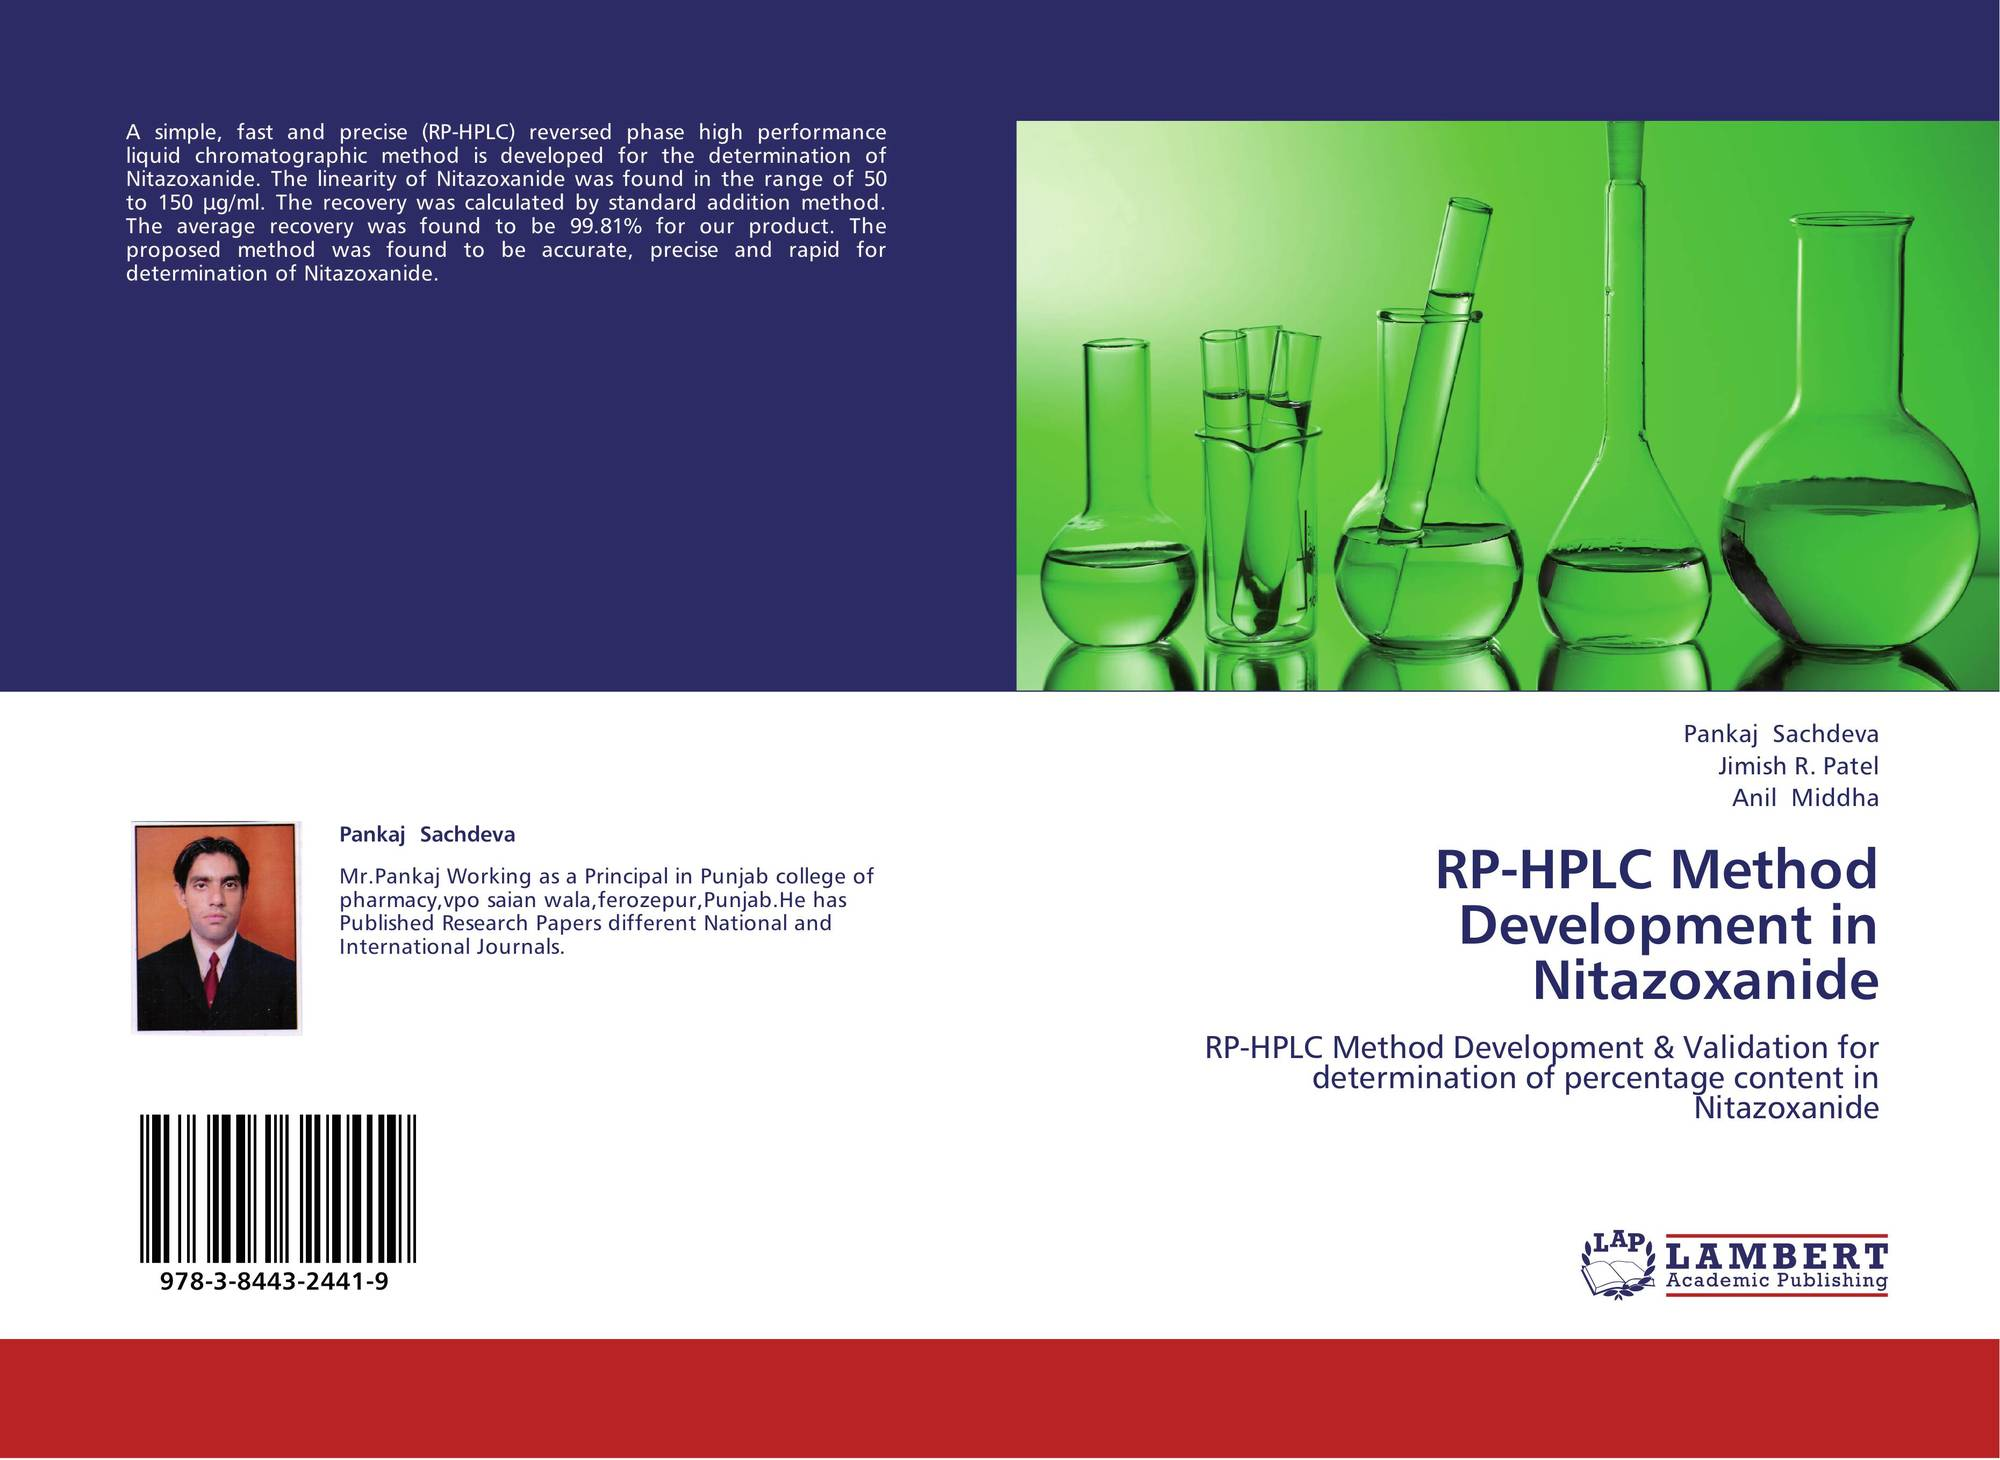 RP-HPLC Method Development in Nitazoxanide, 978-3-8443-2441